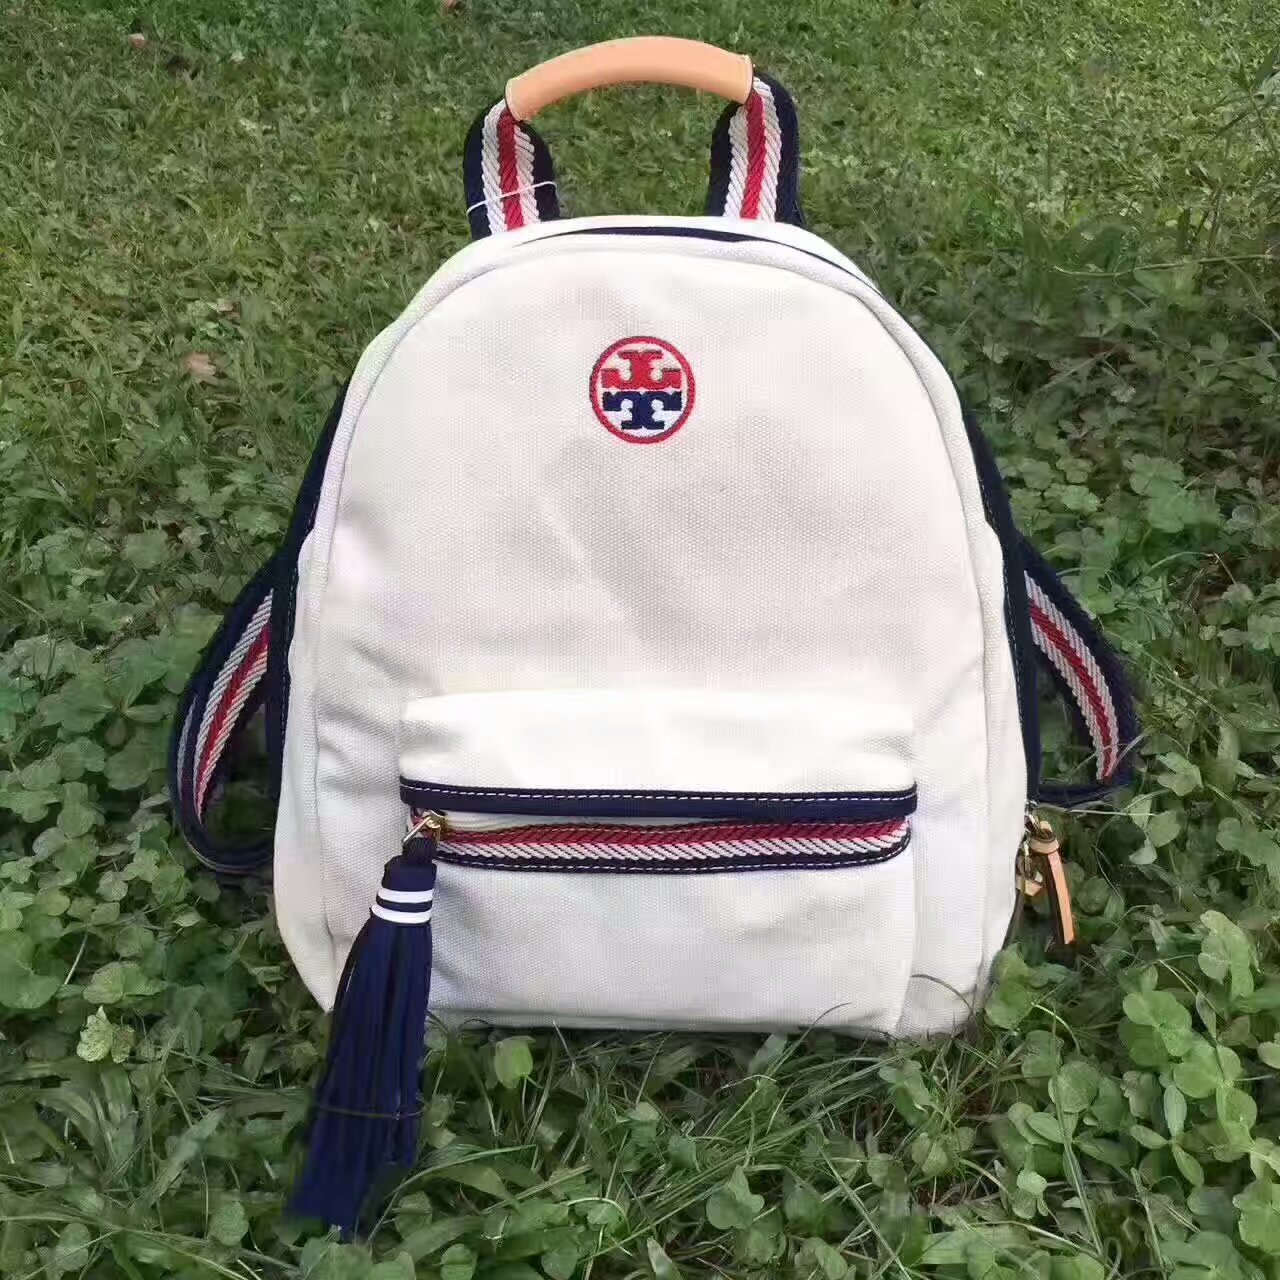 101620ac7f72 Mmexport1495520837579. Mmexport1495520837579. Authentic Tory Burch  Embroidered-T Canvas Backpack. Authentic ...